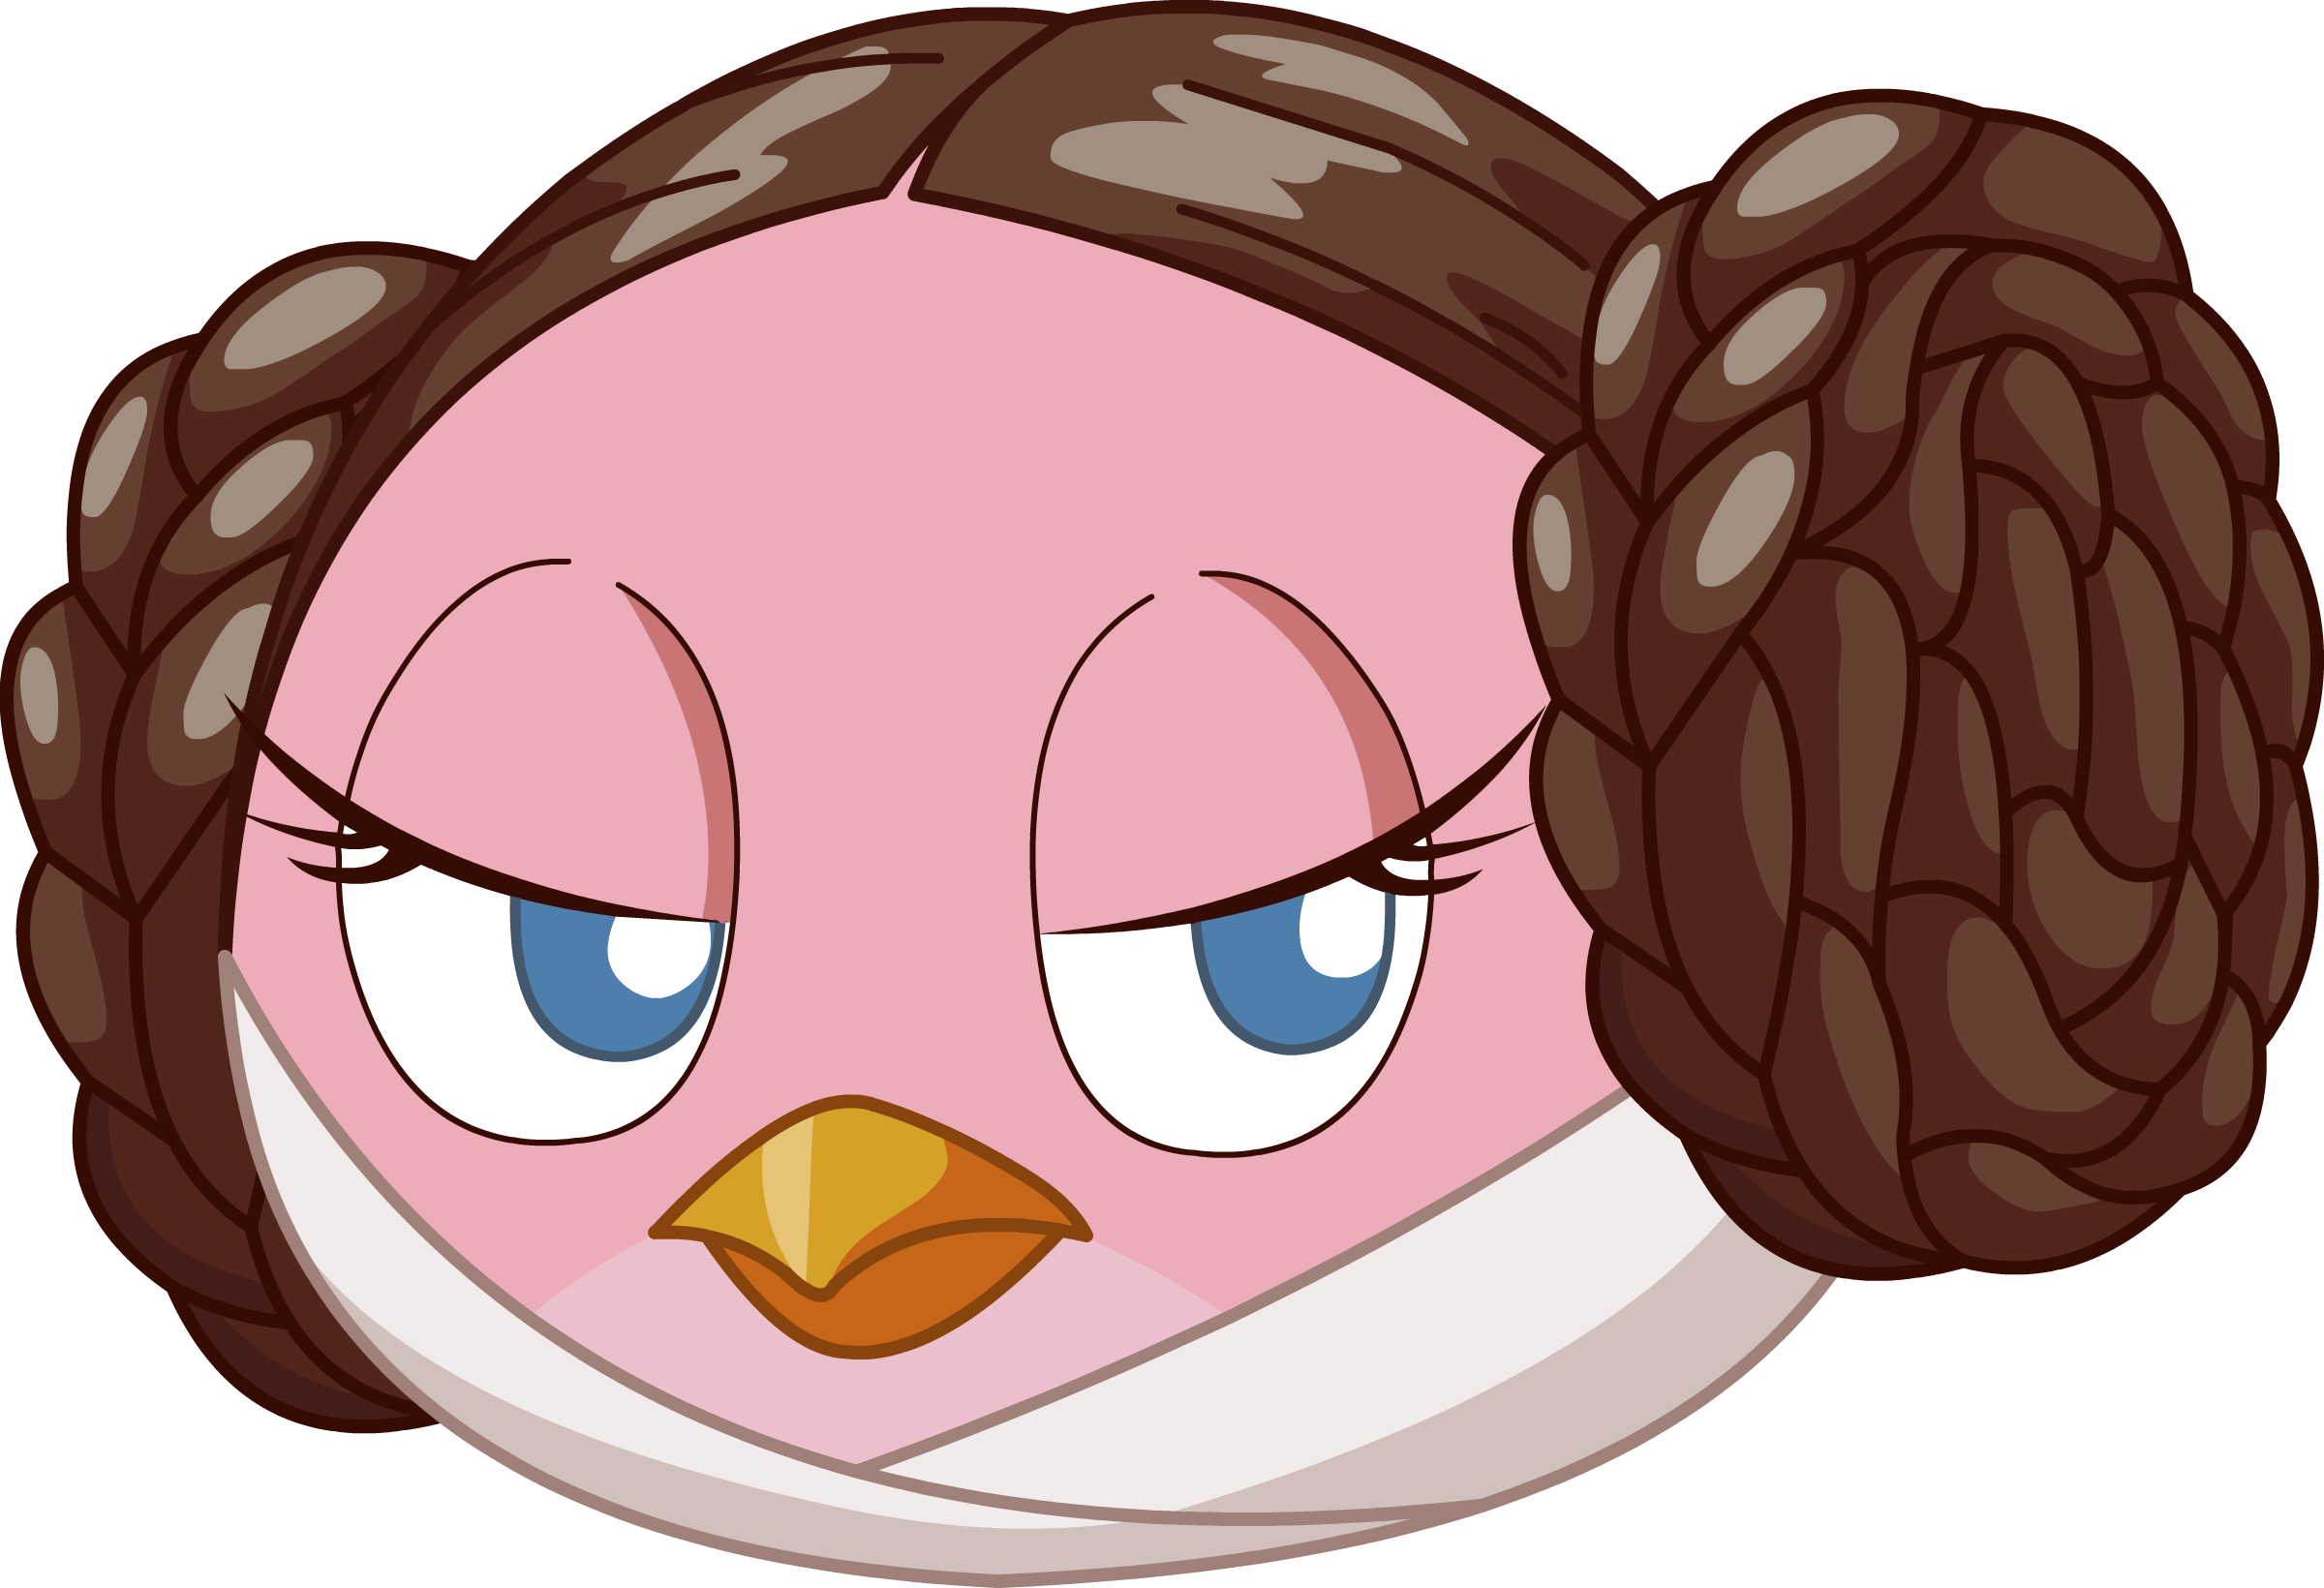 Angry Birds Star Wars Pink By Lavagasm On Newgrounds Angry Birds Star Wars Angry Birds Star Wars Cookies